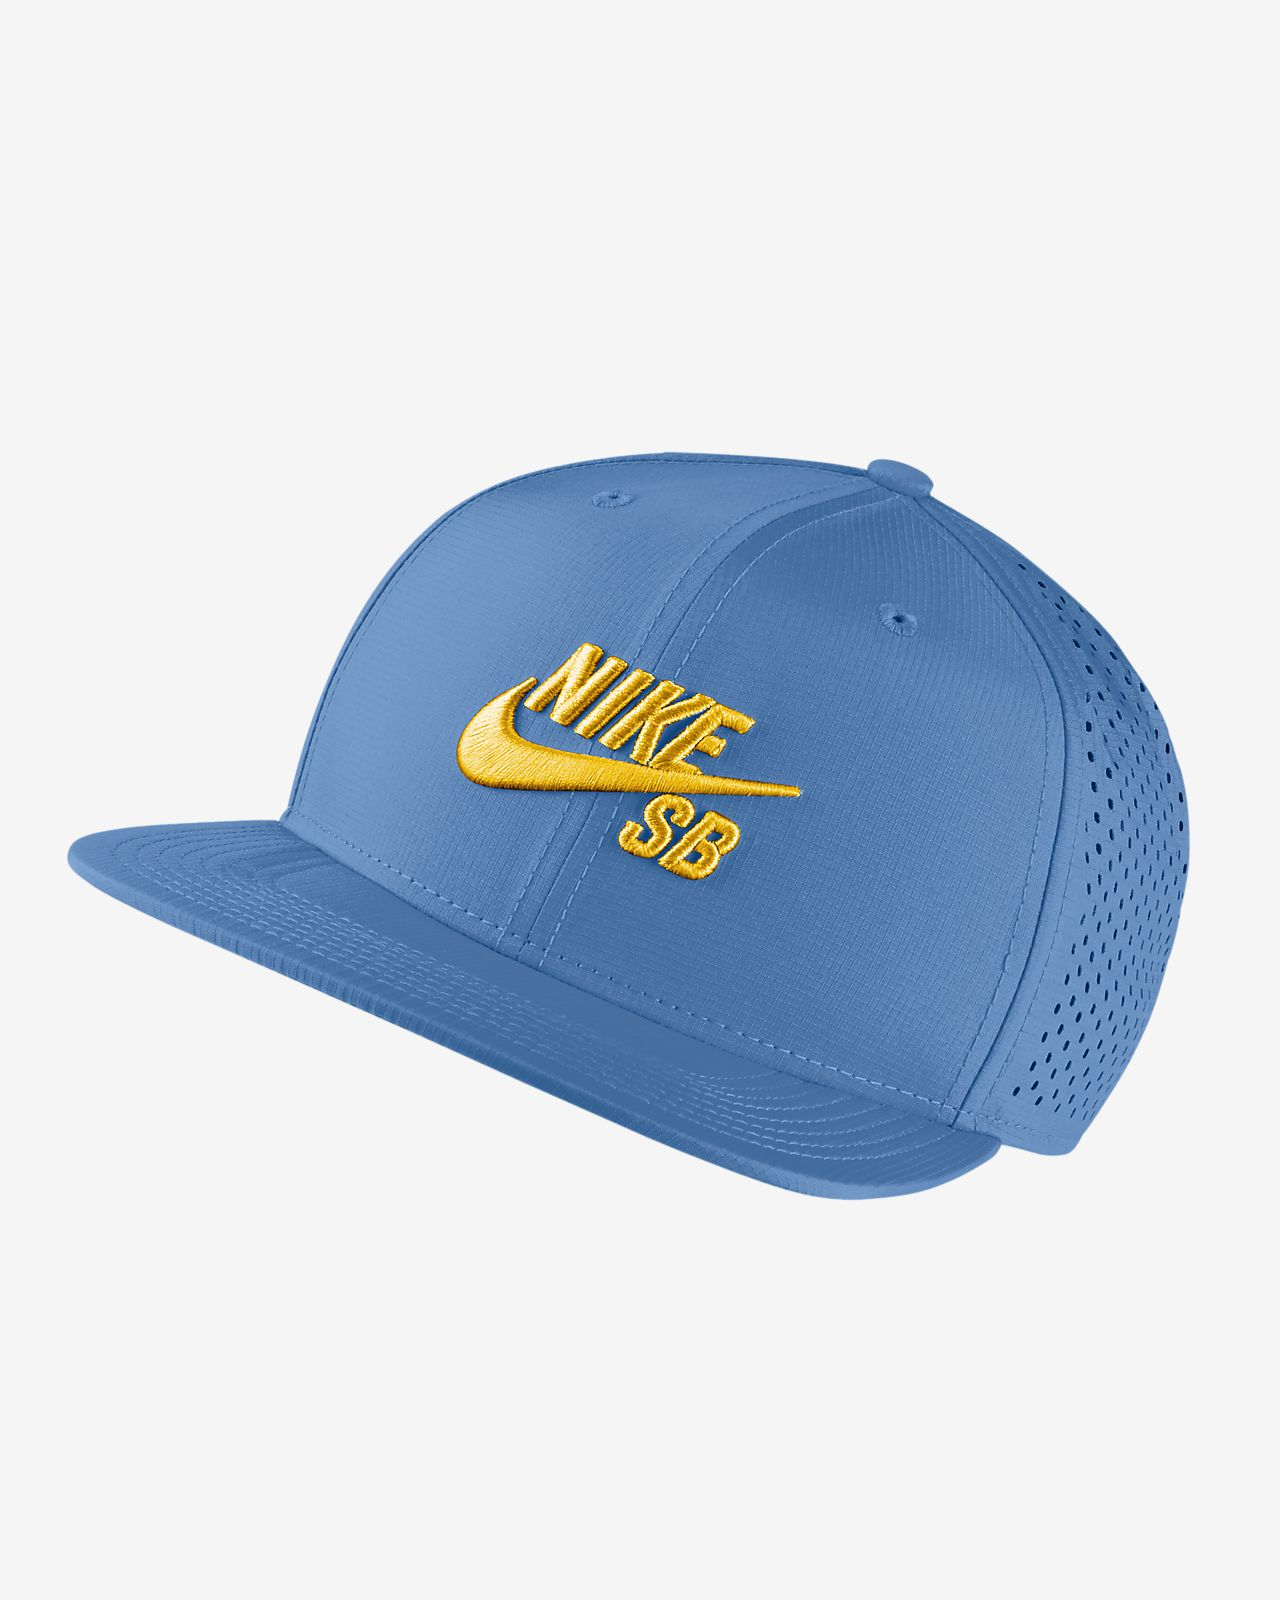 6946543a Nike SB Performance Trucker Hat. Nike.com